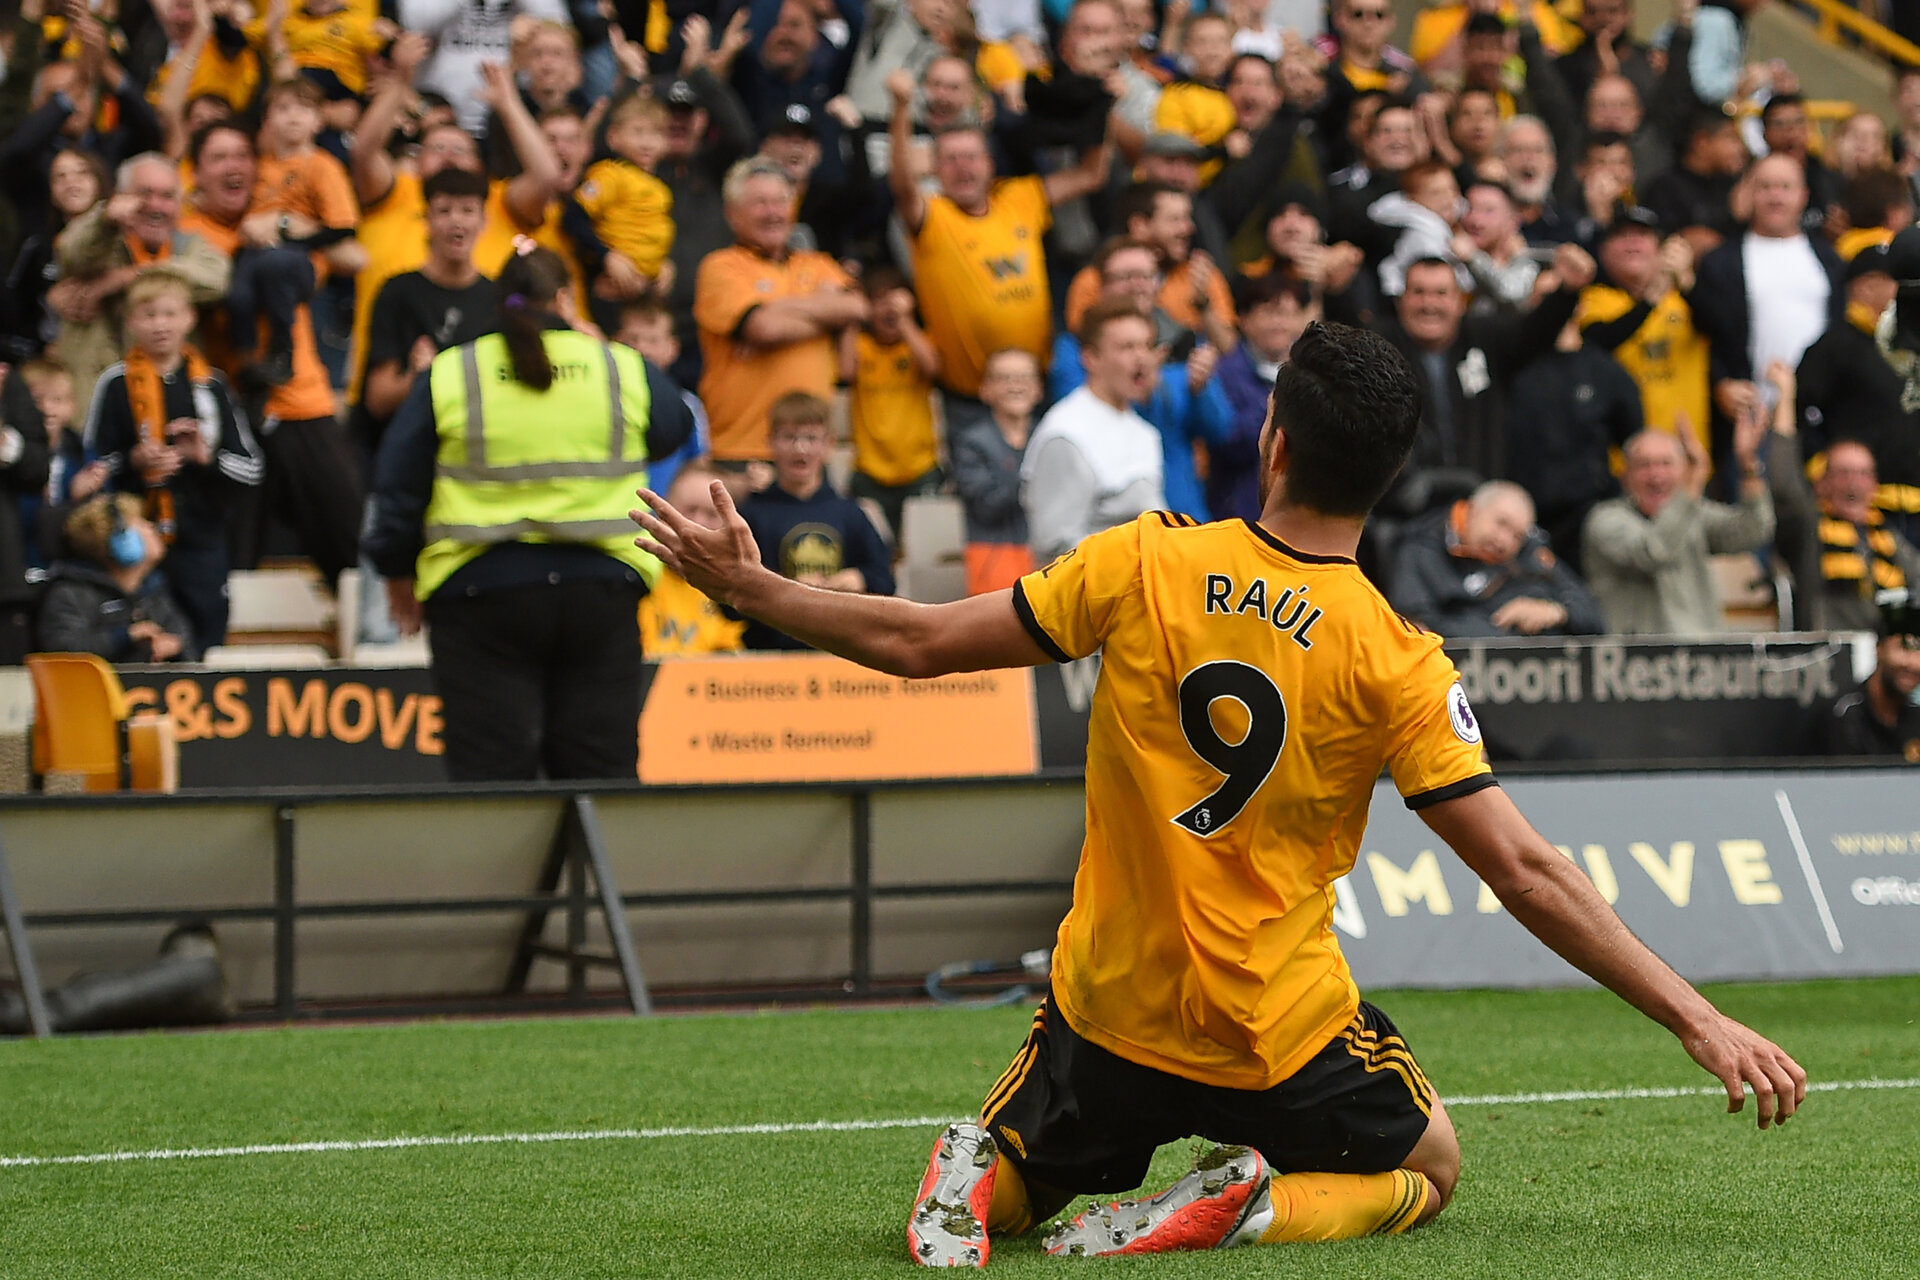 Wolverhampton Wanderers' Mexican striker Raul Jimenez celebrates after scoring the opening goal of the English Premier League football match between Wolverhampton Wanderers and Burnley at the Molineux stadium in Wolverhampton, central England on September 16, 2018. (Photo by Oli SCARFF / AFP) / RESTRICTED TO EDITORIAL USE. No use with unauthorized audio, video, data, fixture lists, club/league logos or 'live' services. Online in-match use limited to 120 images. An additional 40 images may be used in extra time. No video emulation. Social media in-match use limited to 120 images. An additional 40 images may be used in extra time. No use in betting publications, games or single club/league/player publications. /         (Photo credit should read OLI SCARFF/AFP/Getty Images)